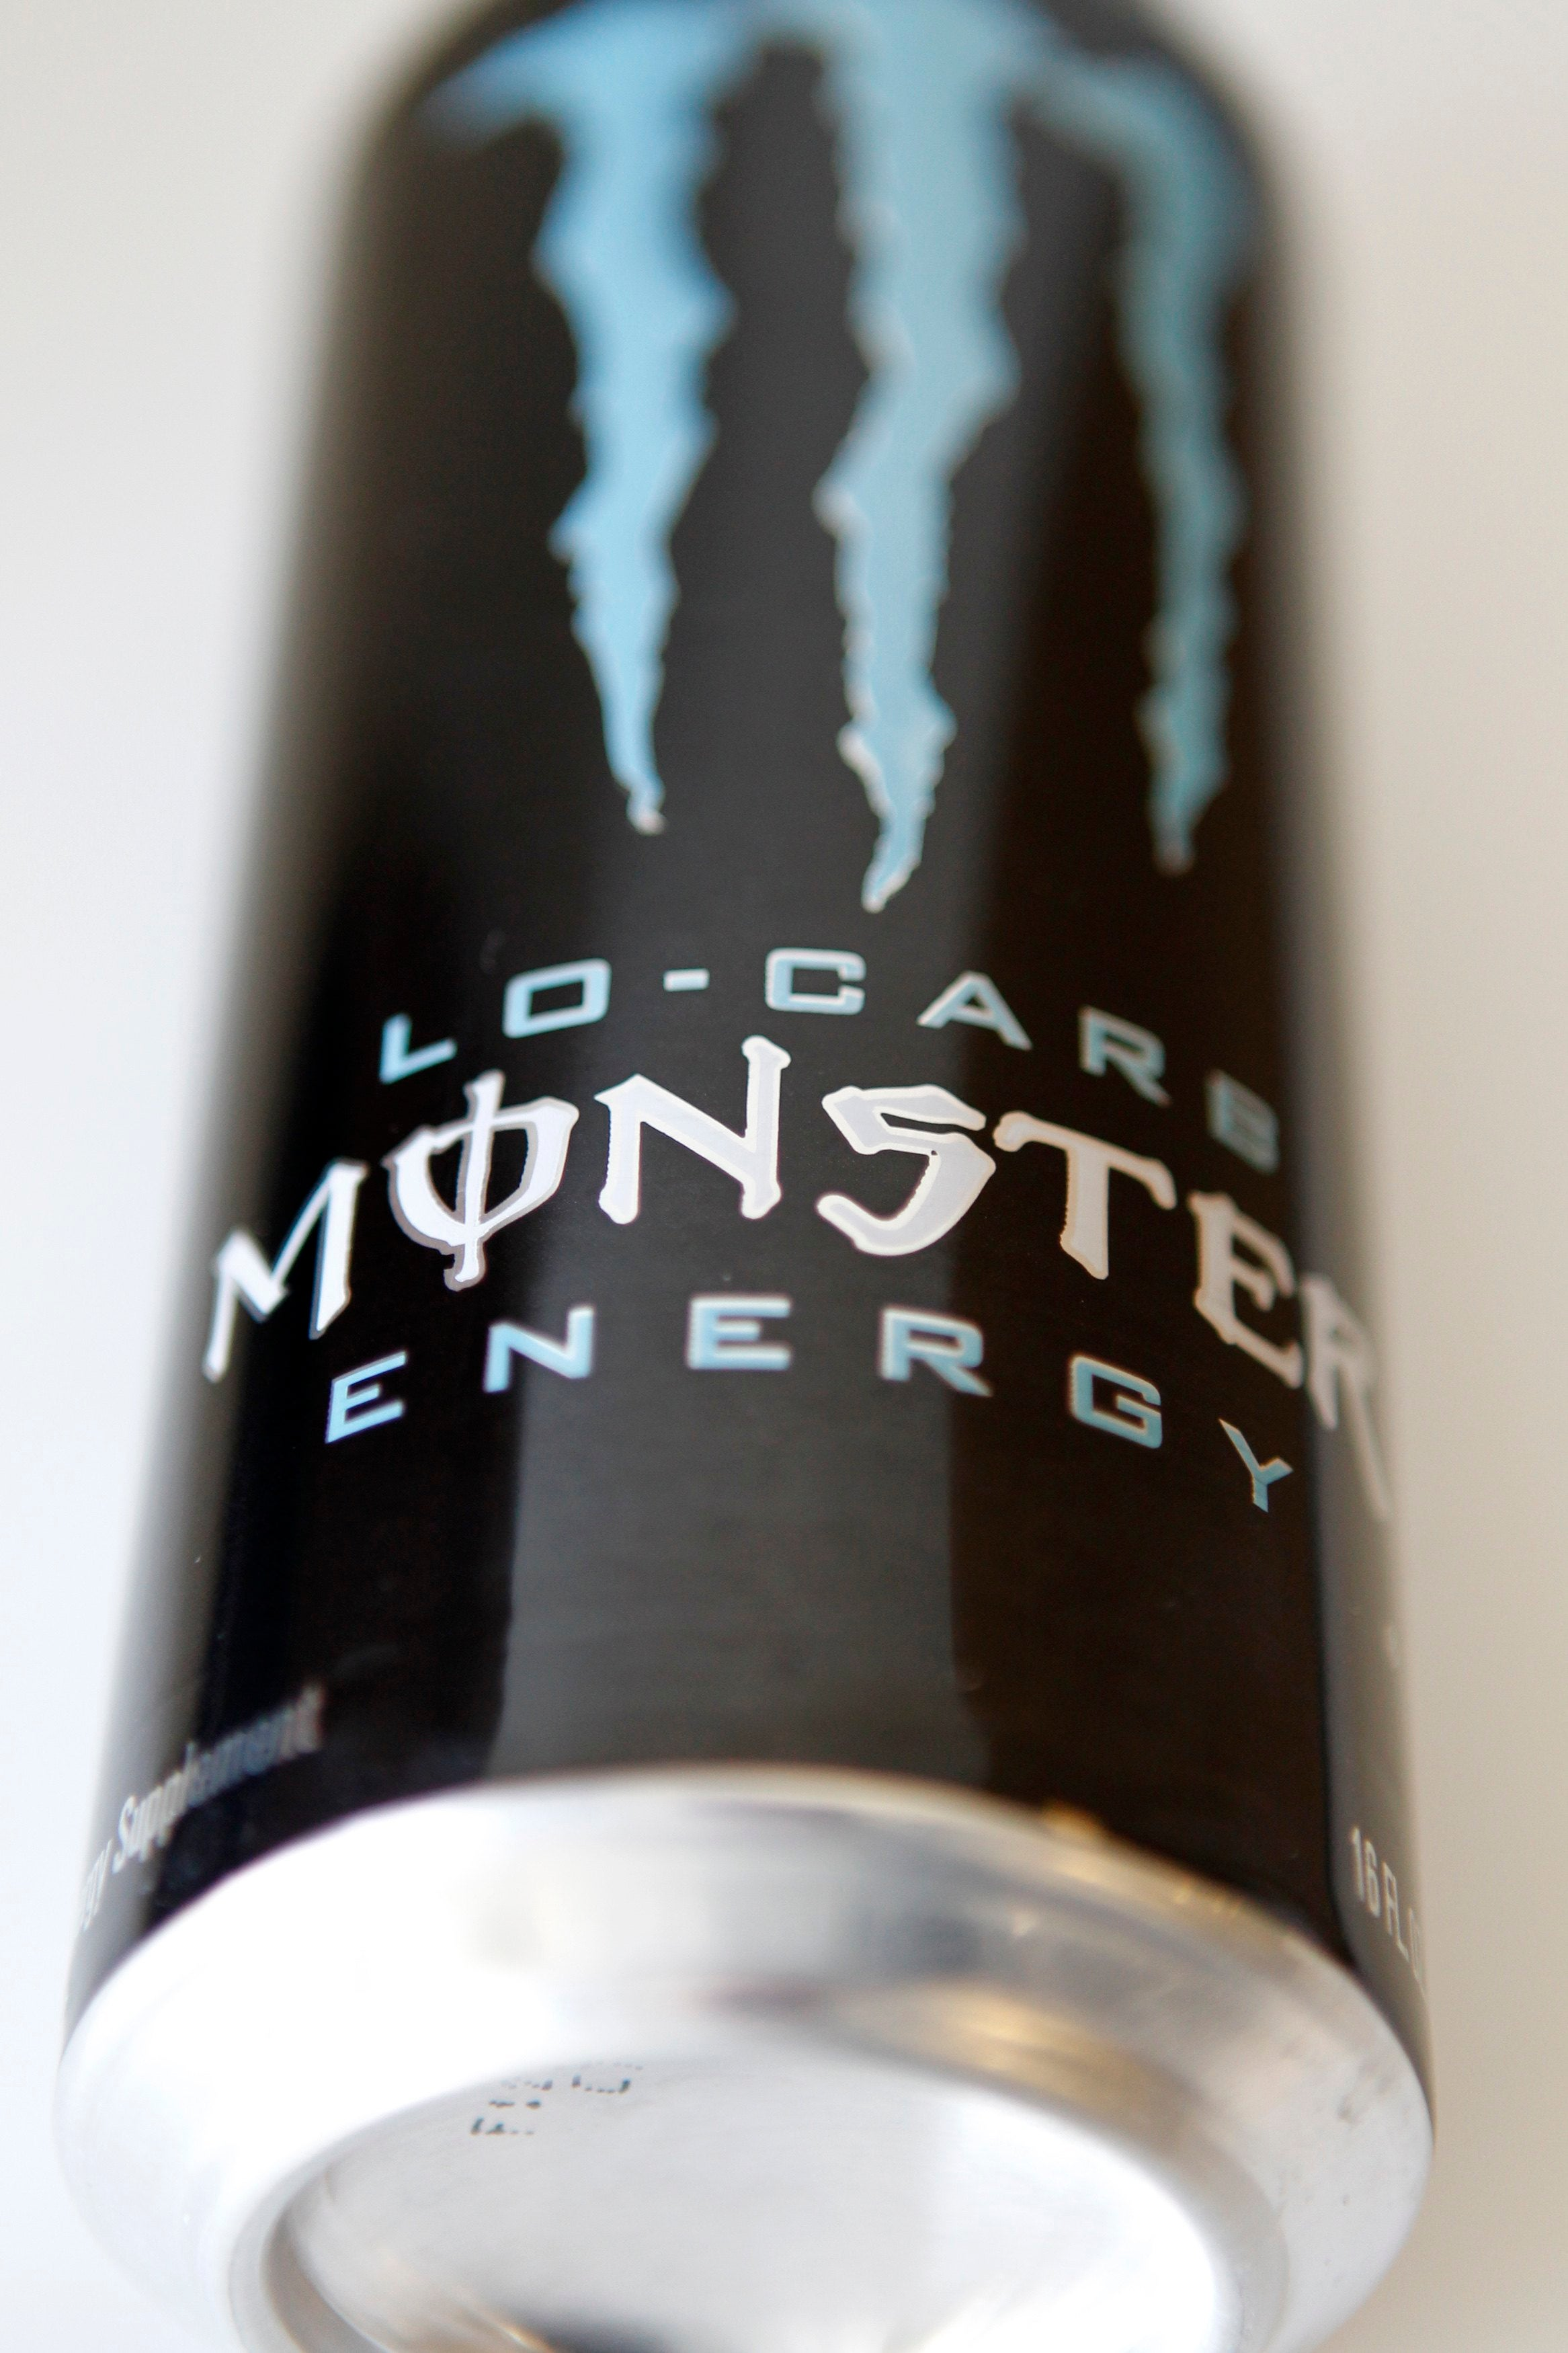 How Much Caffeine Is Really In Those Energy Drinks